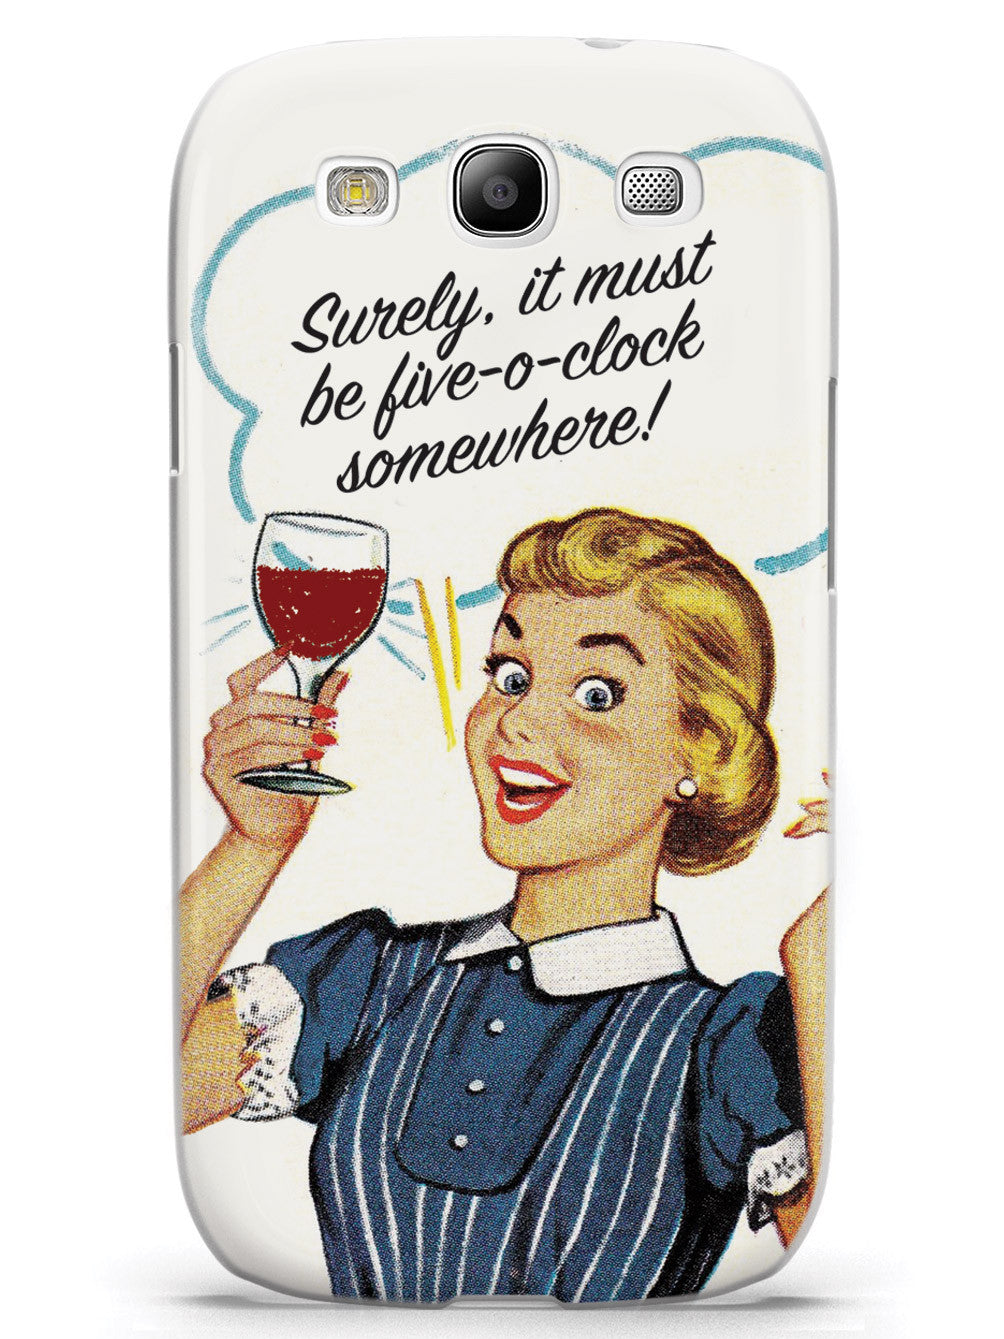 Five-O-Clock Somewhere - Retro Housewife Case